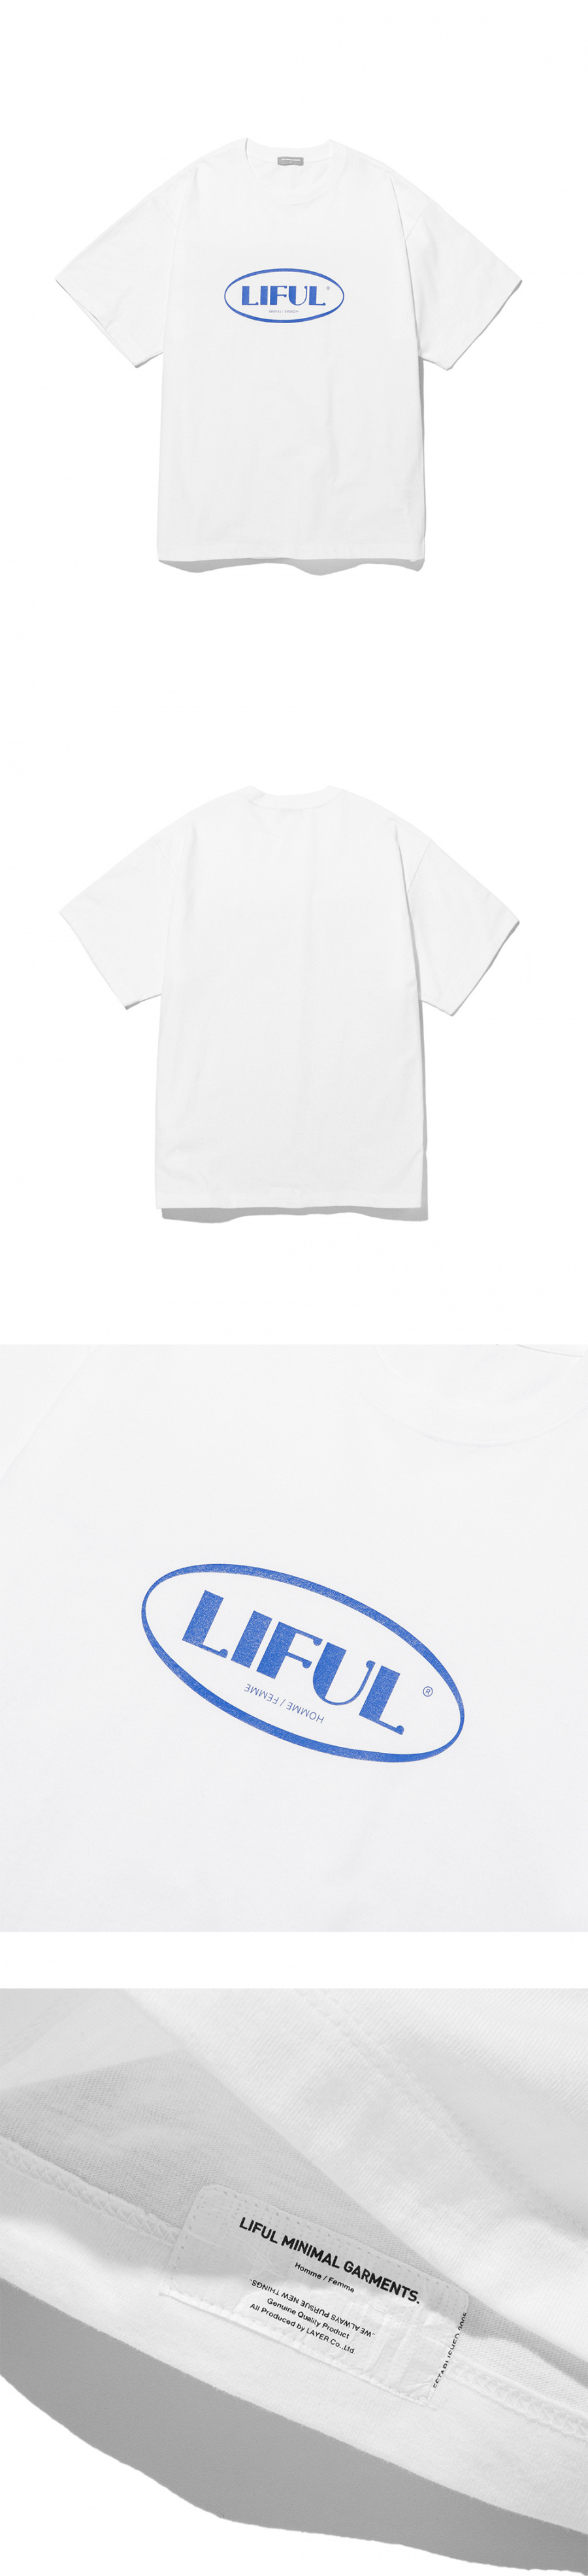 라이풀(LIFUL) OVAL LOGO TEE snow white